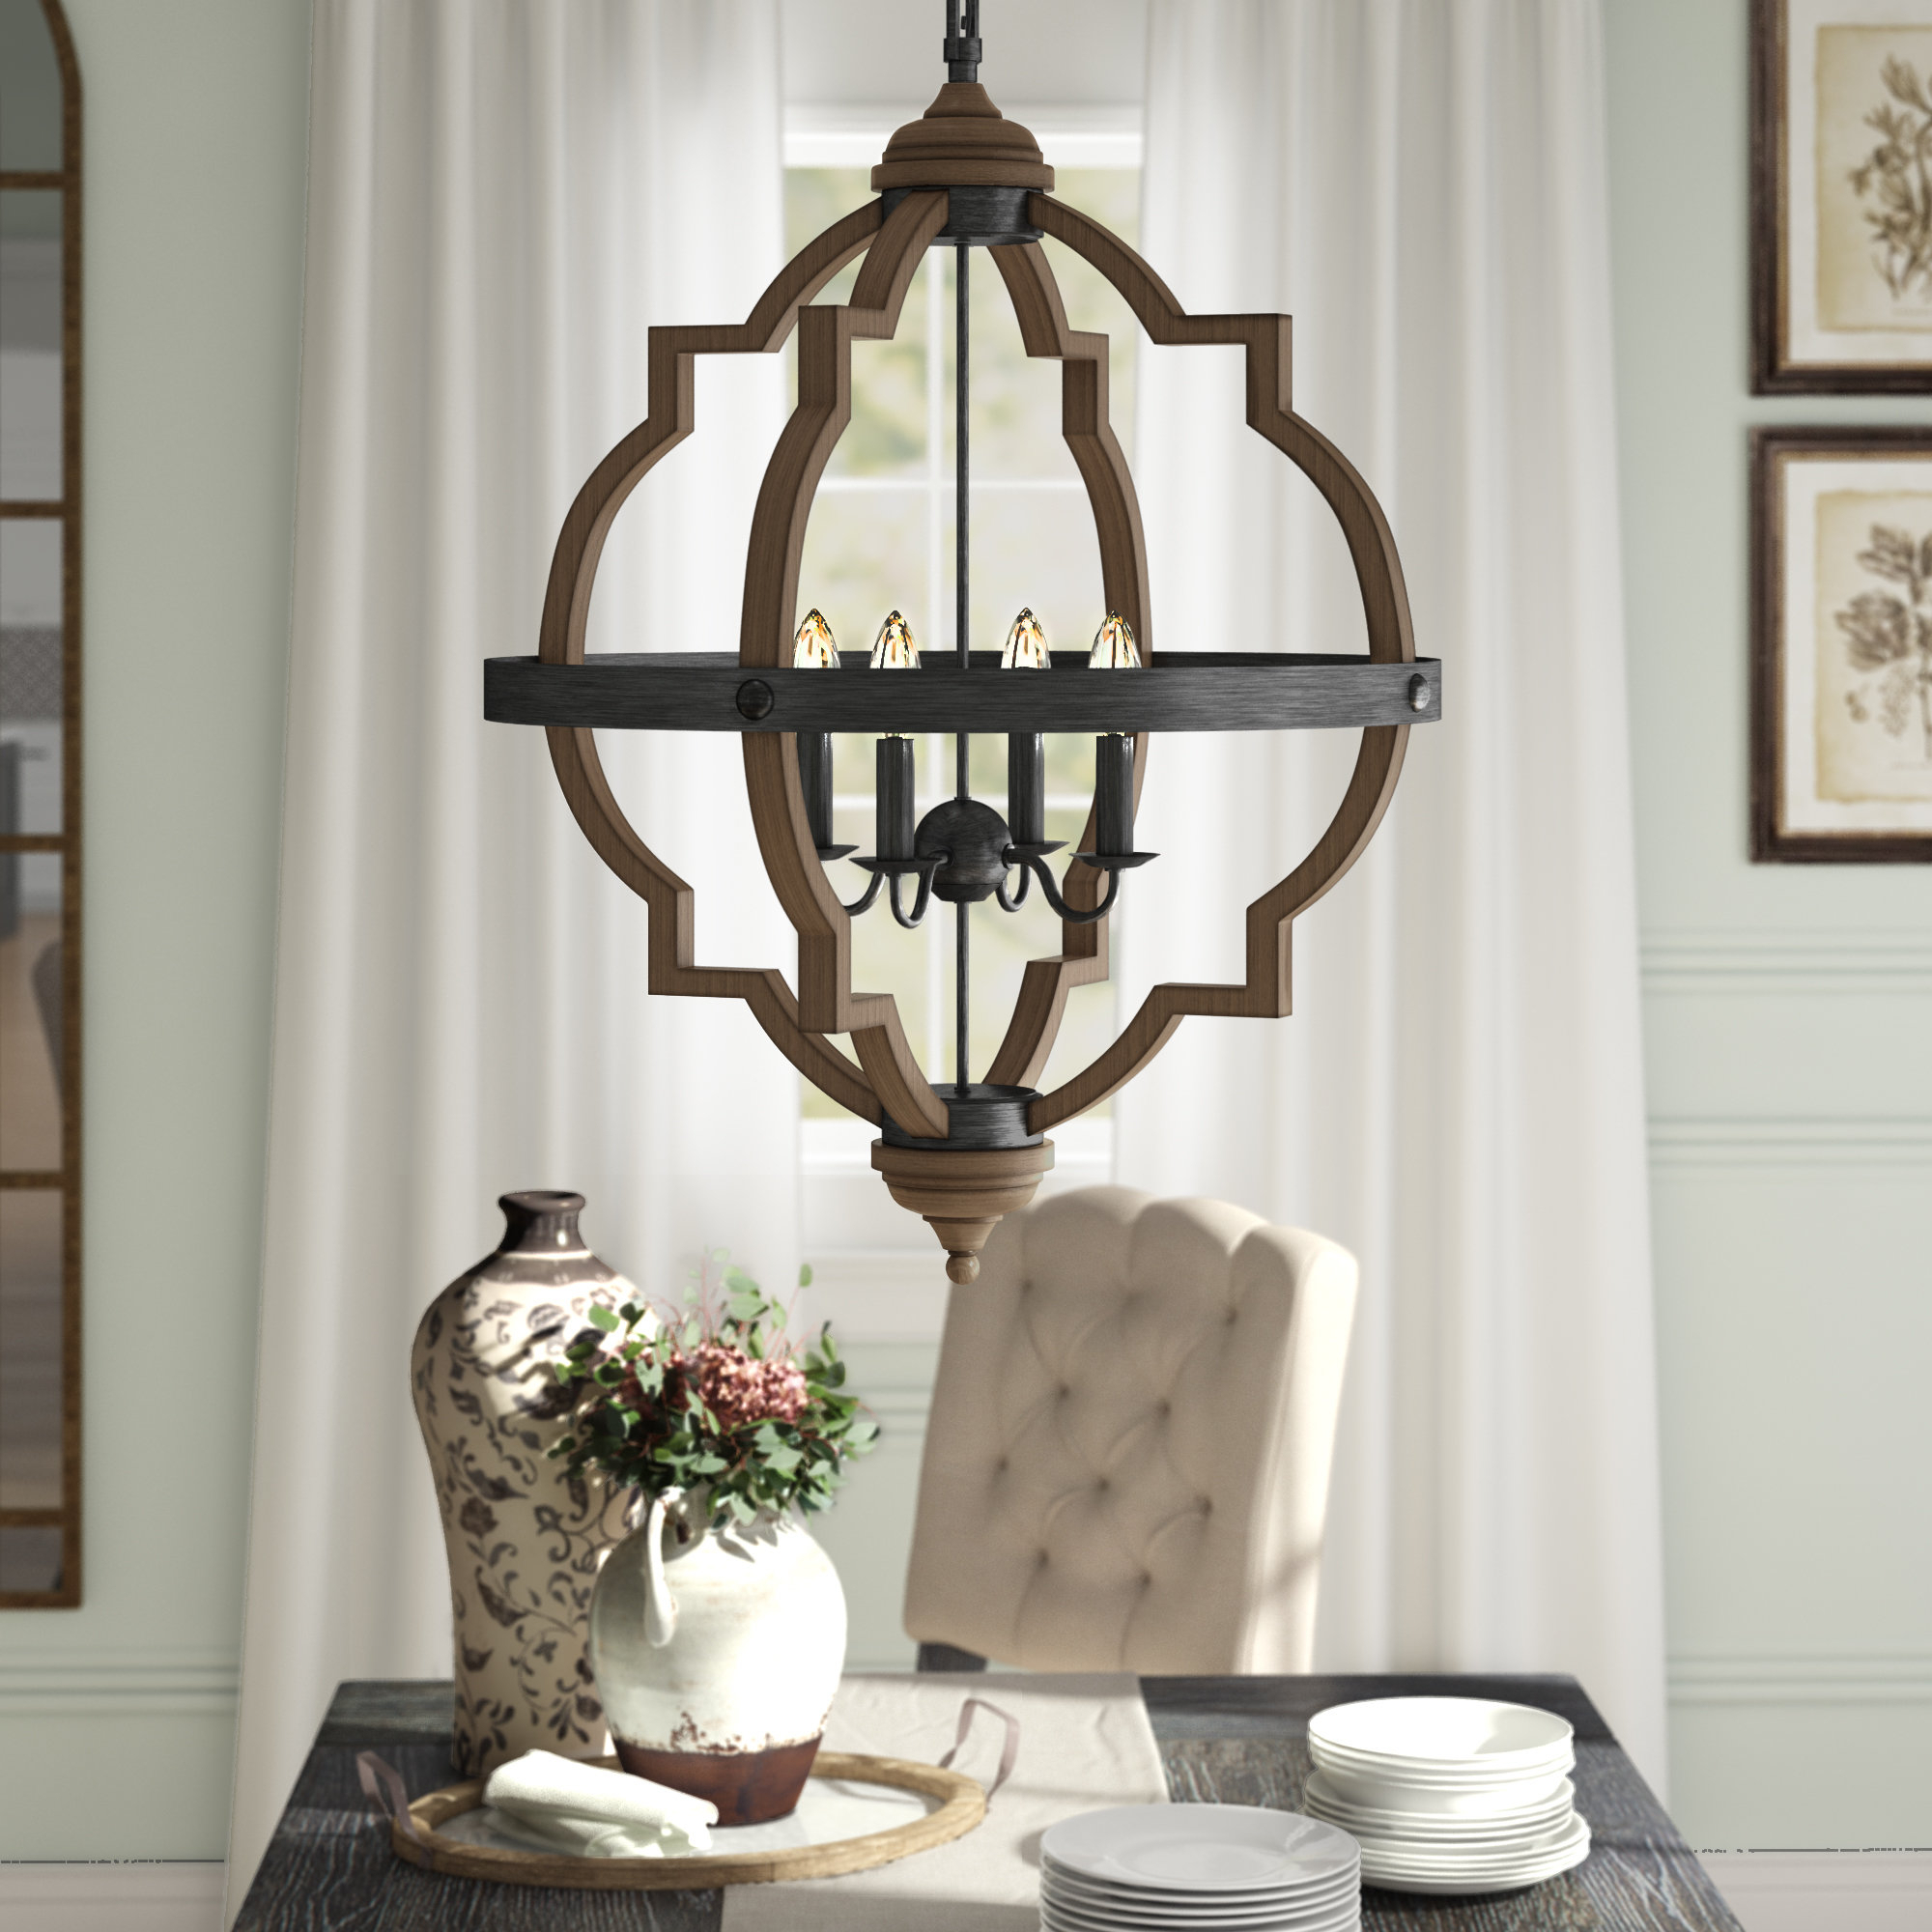 2020 Bennington 6-Light Candle Style Chandeliers pertaining to Bennington 4-Light Candle Style Chandelier